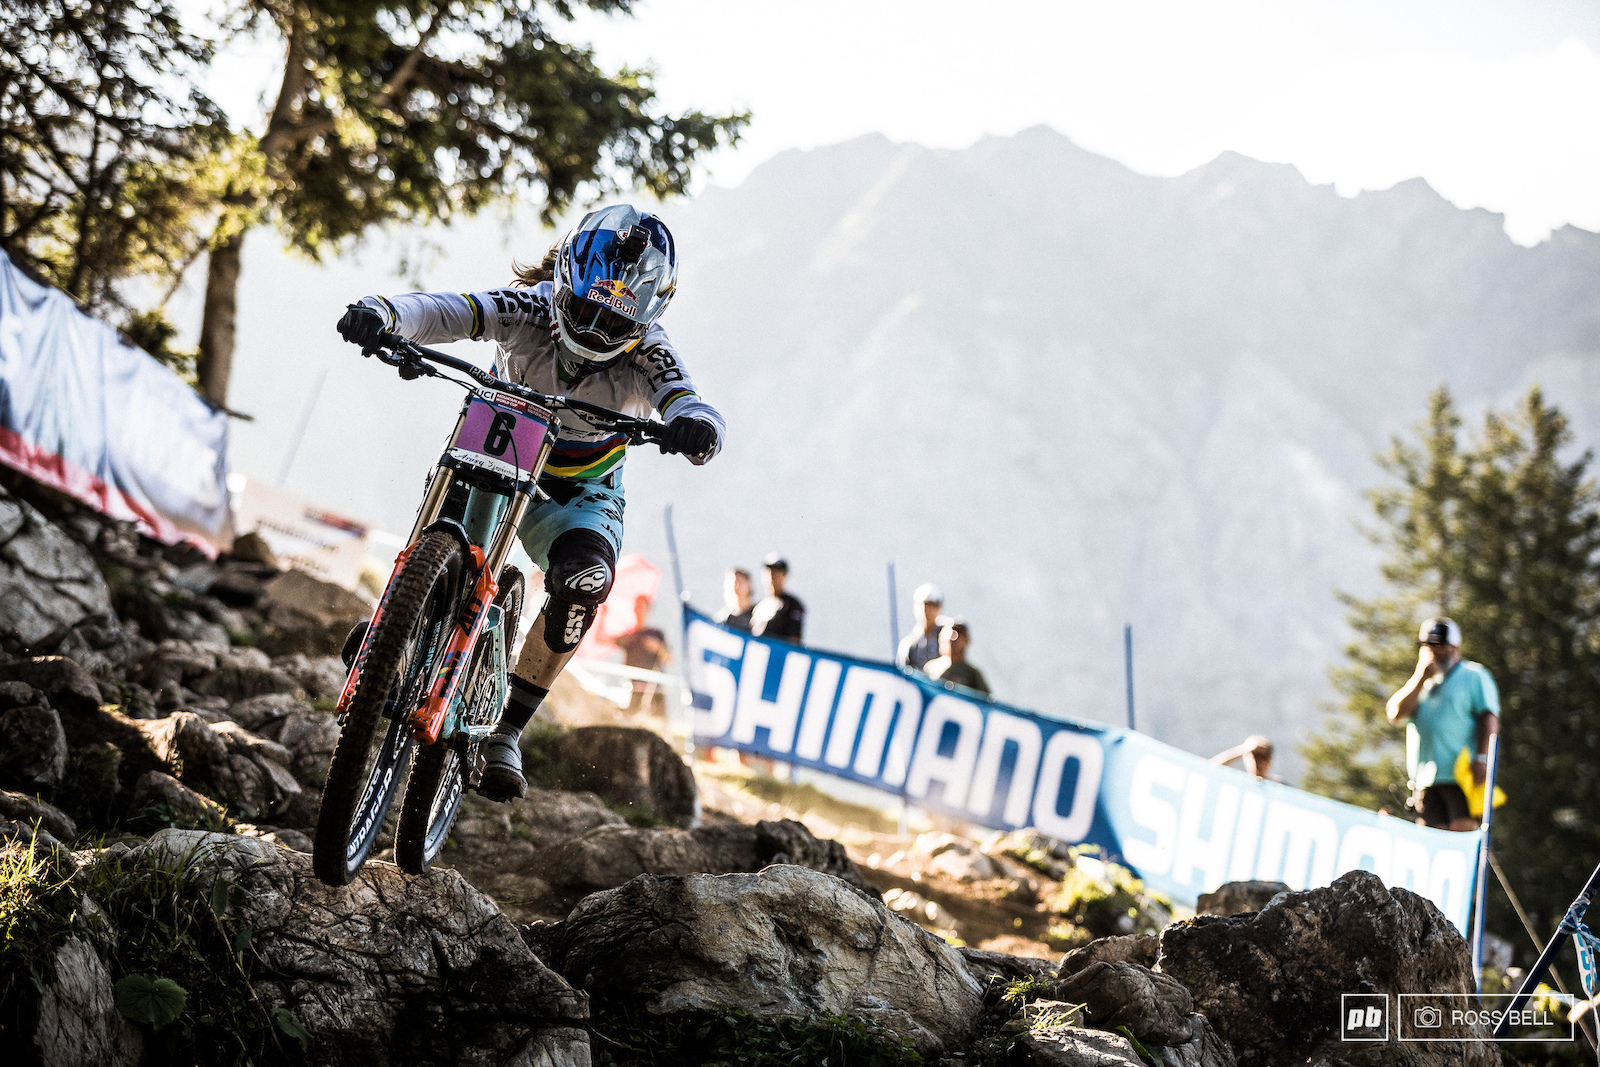 It looks like Rachel Atherton is getting back up to pace but her shoulder is still struggling towards the end of tracks today s splits would pay testament to that too.